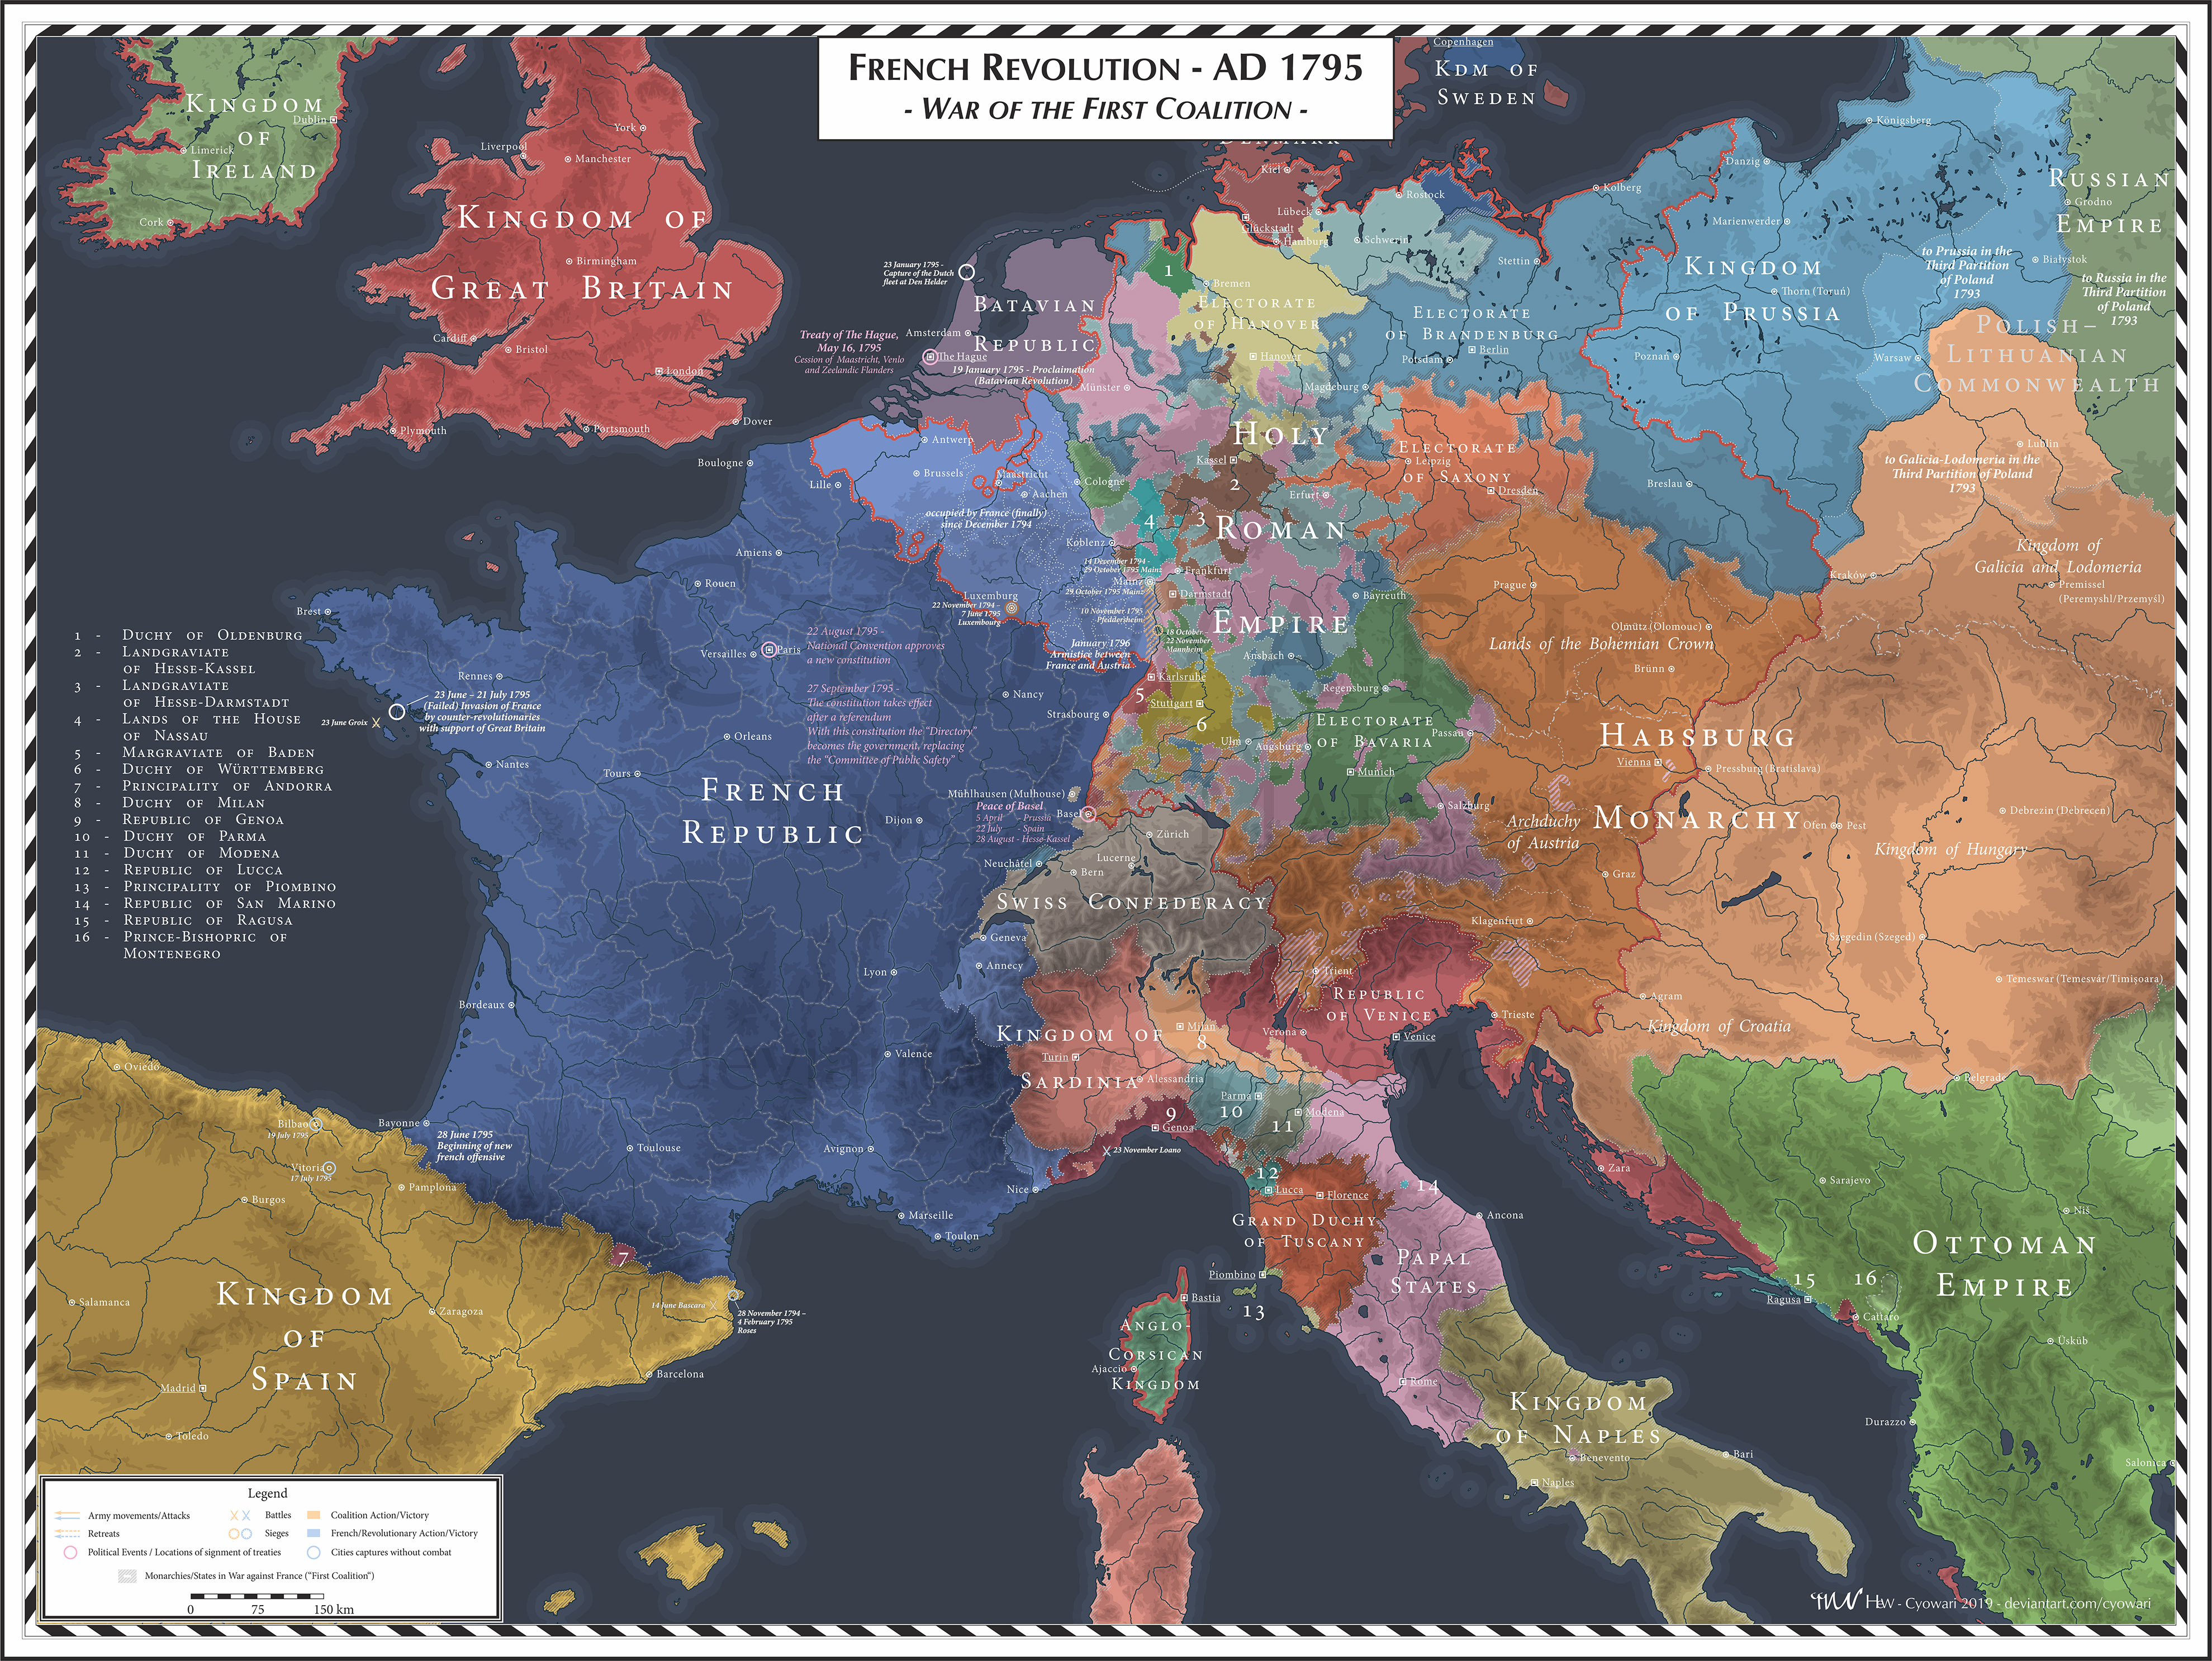 French Revolution - 1795 - First Coalition